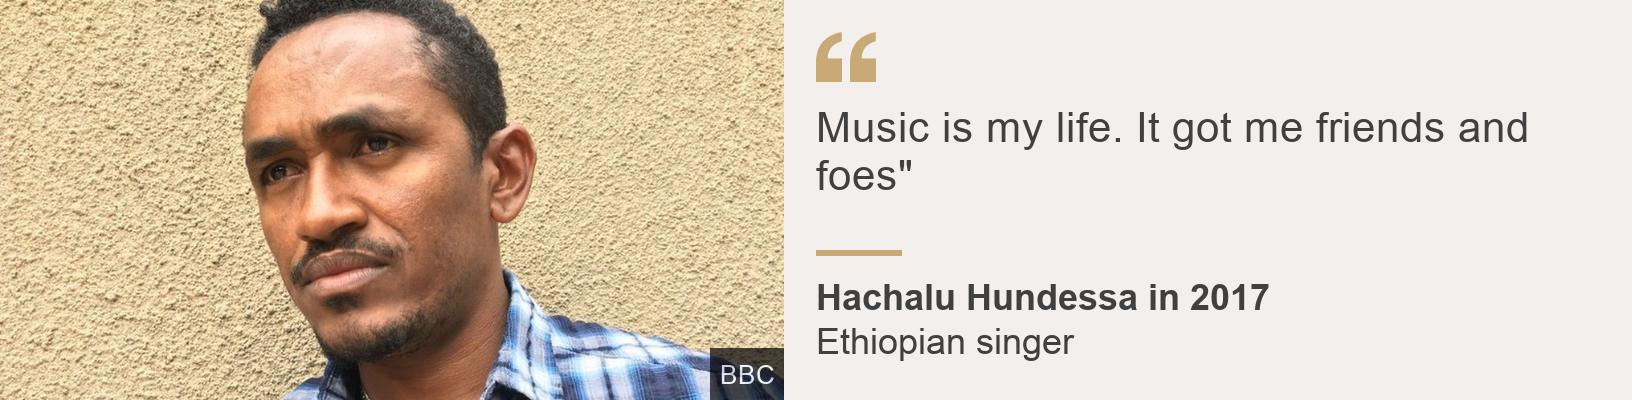 """Music is my life. It got me friends and foes"""", Source: Hachalu Hundessa in 2017, Source description: Ethiopian singer, Image: Hachalu Hundessa"